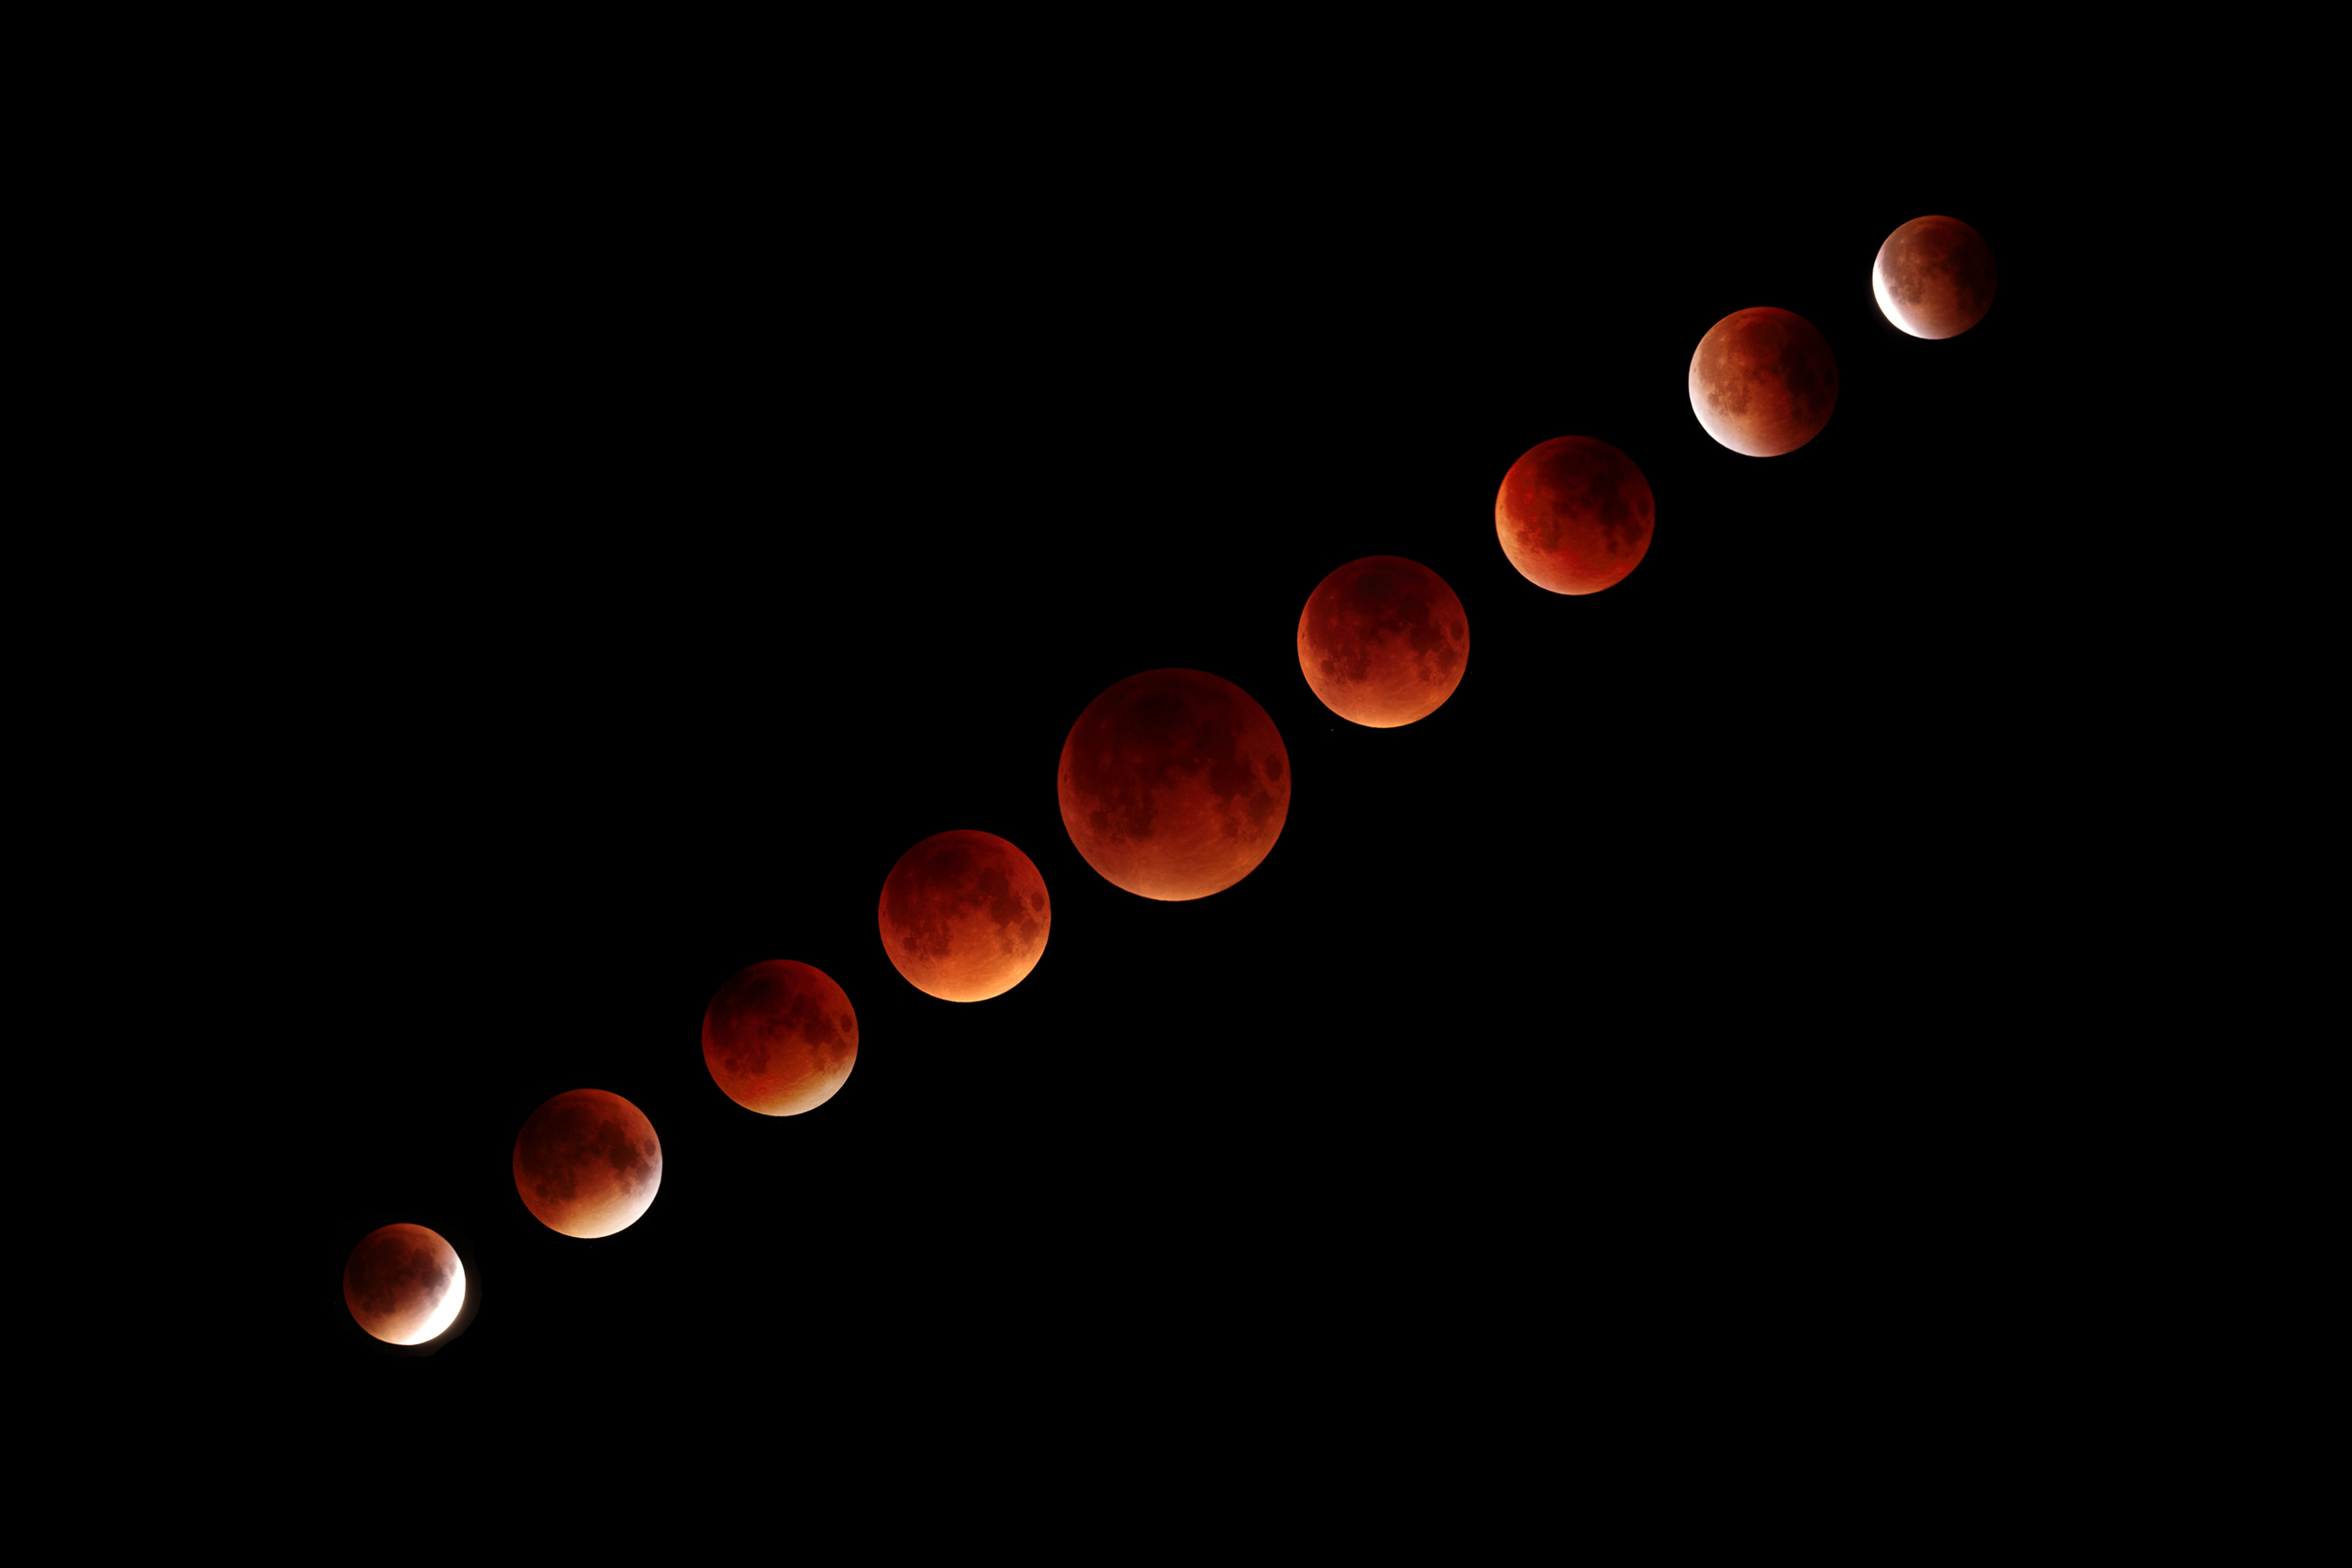 This is a collage of the 2015 Lunar Eclipse from start to fini  sh. The center image is the eclipse in full totality.